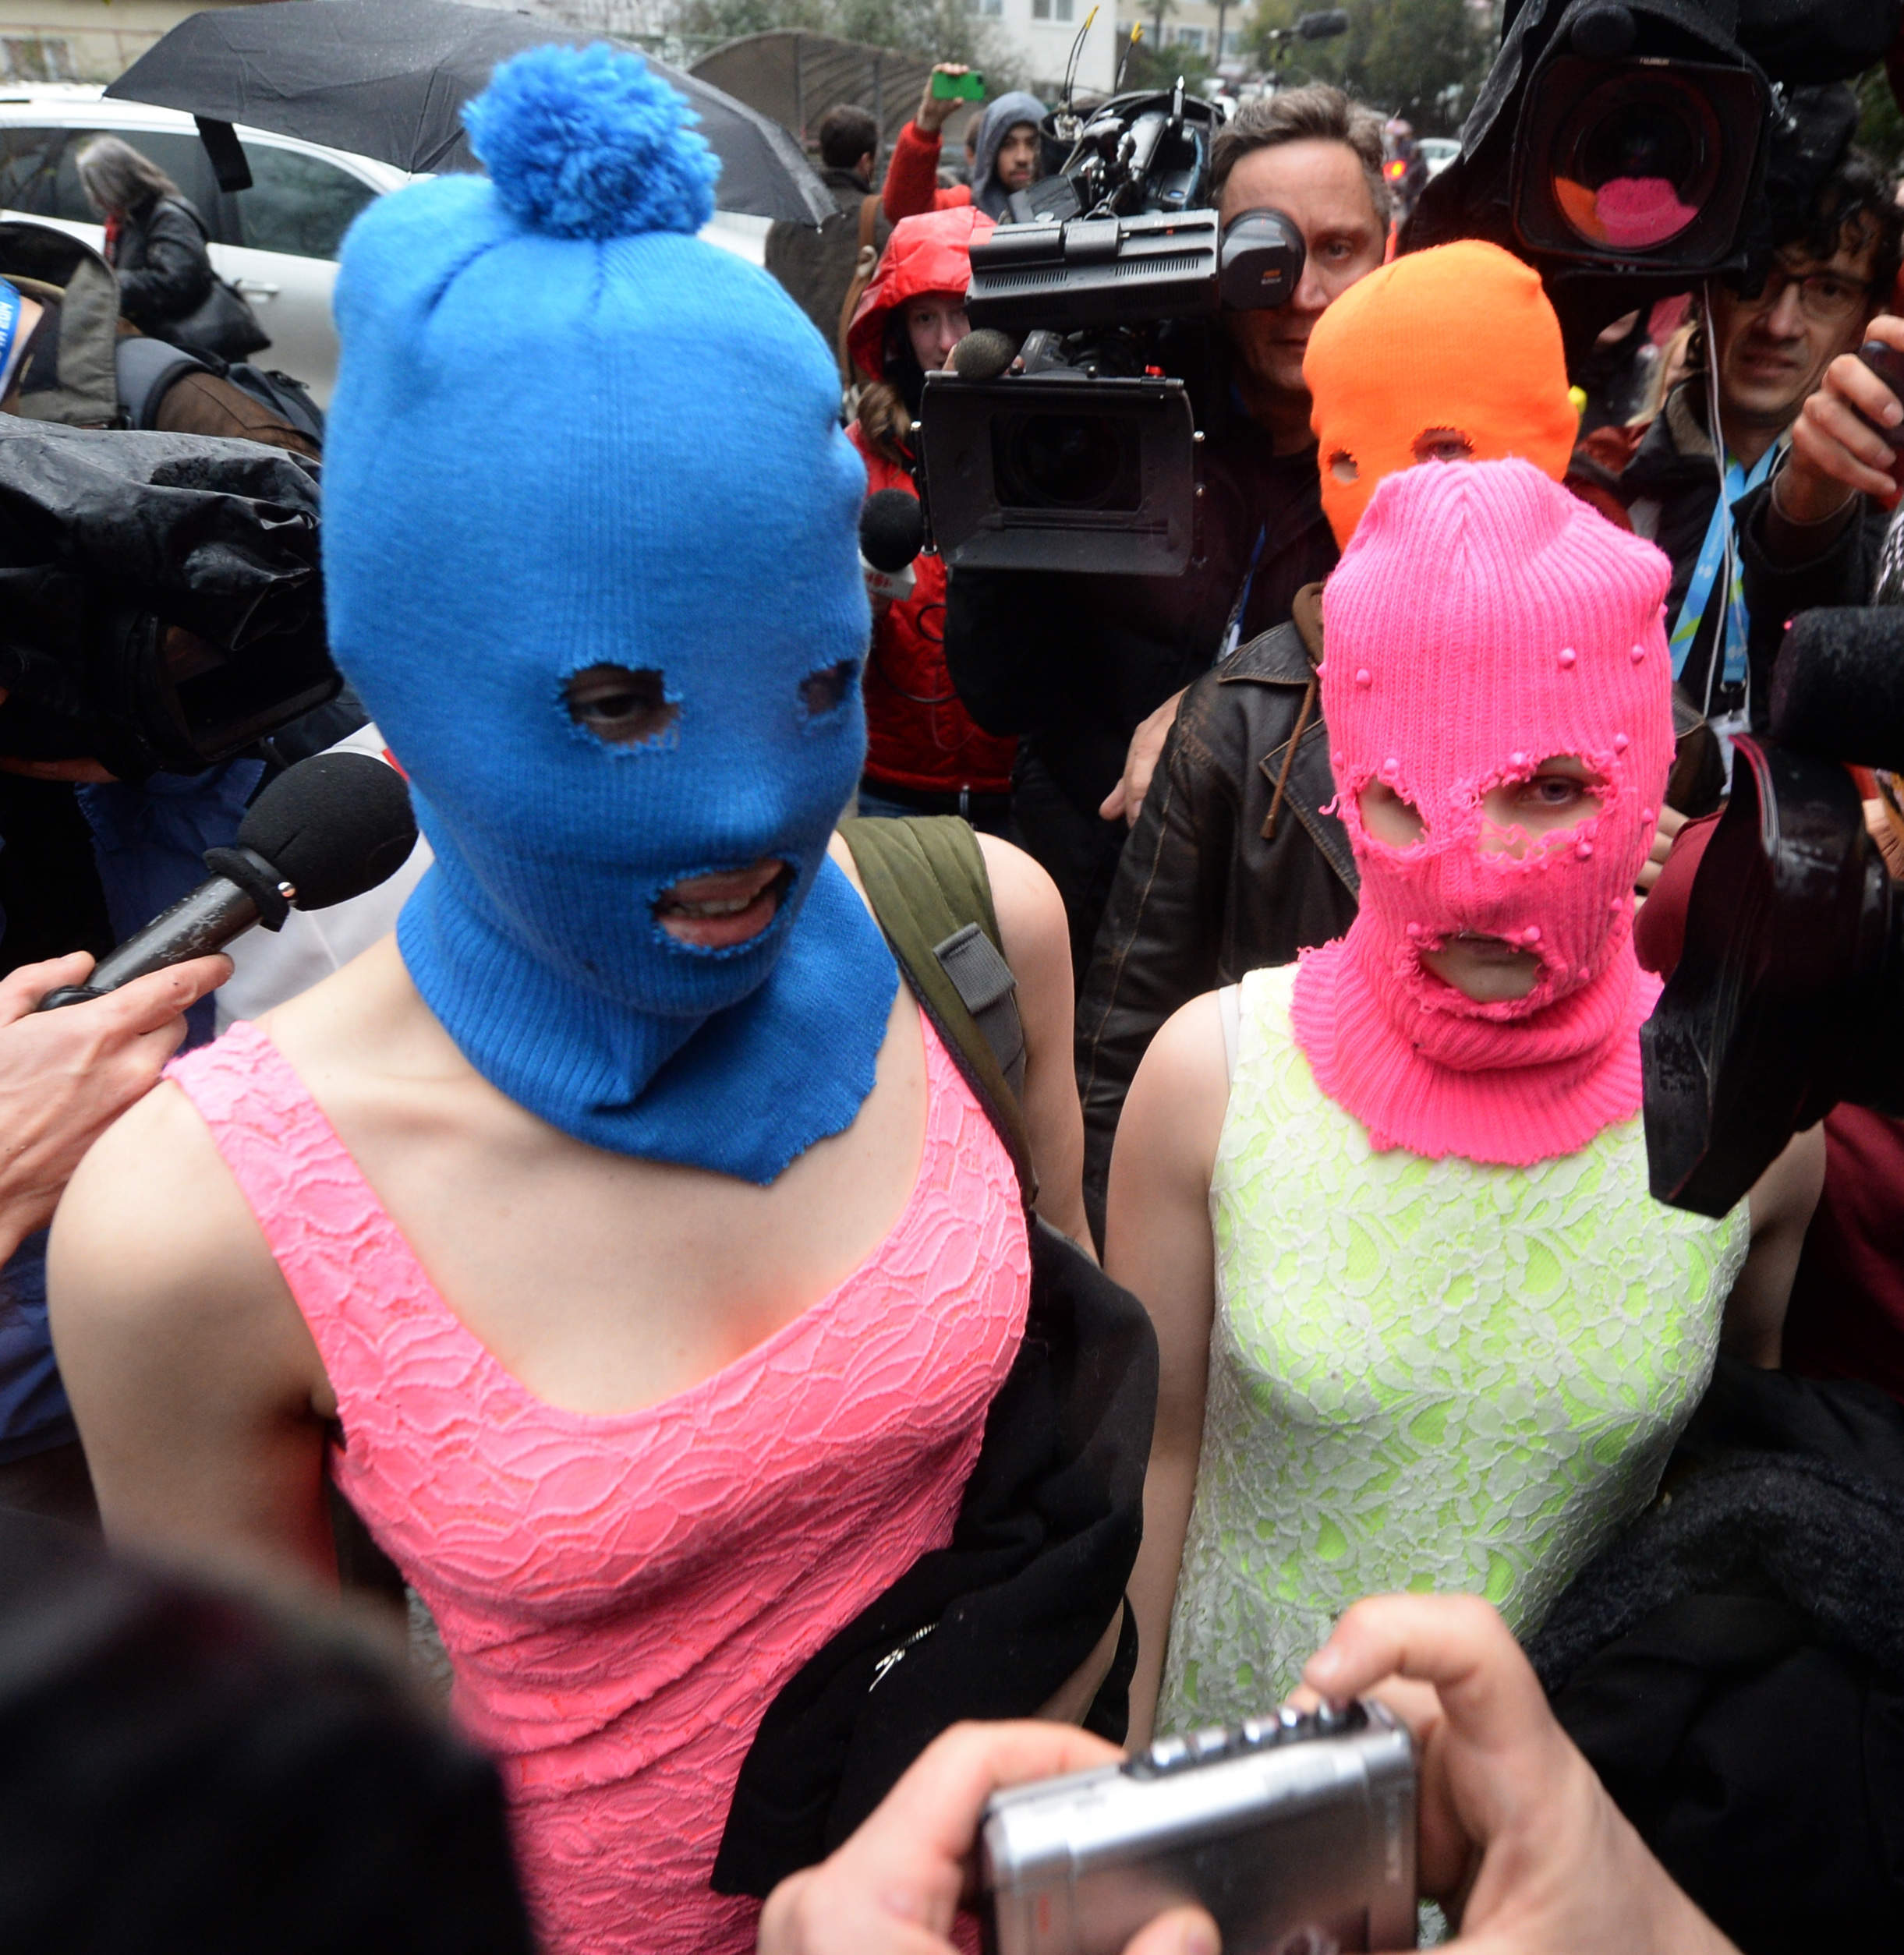 What's it like to be a human rights activist in post-Pussy Riot Russia?